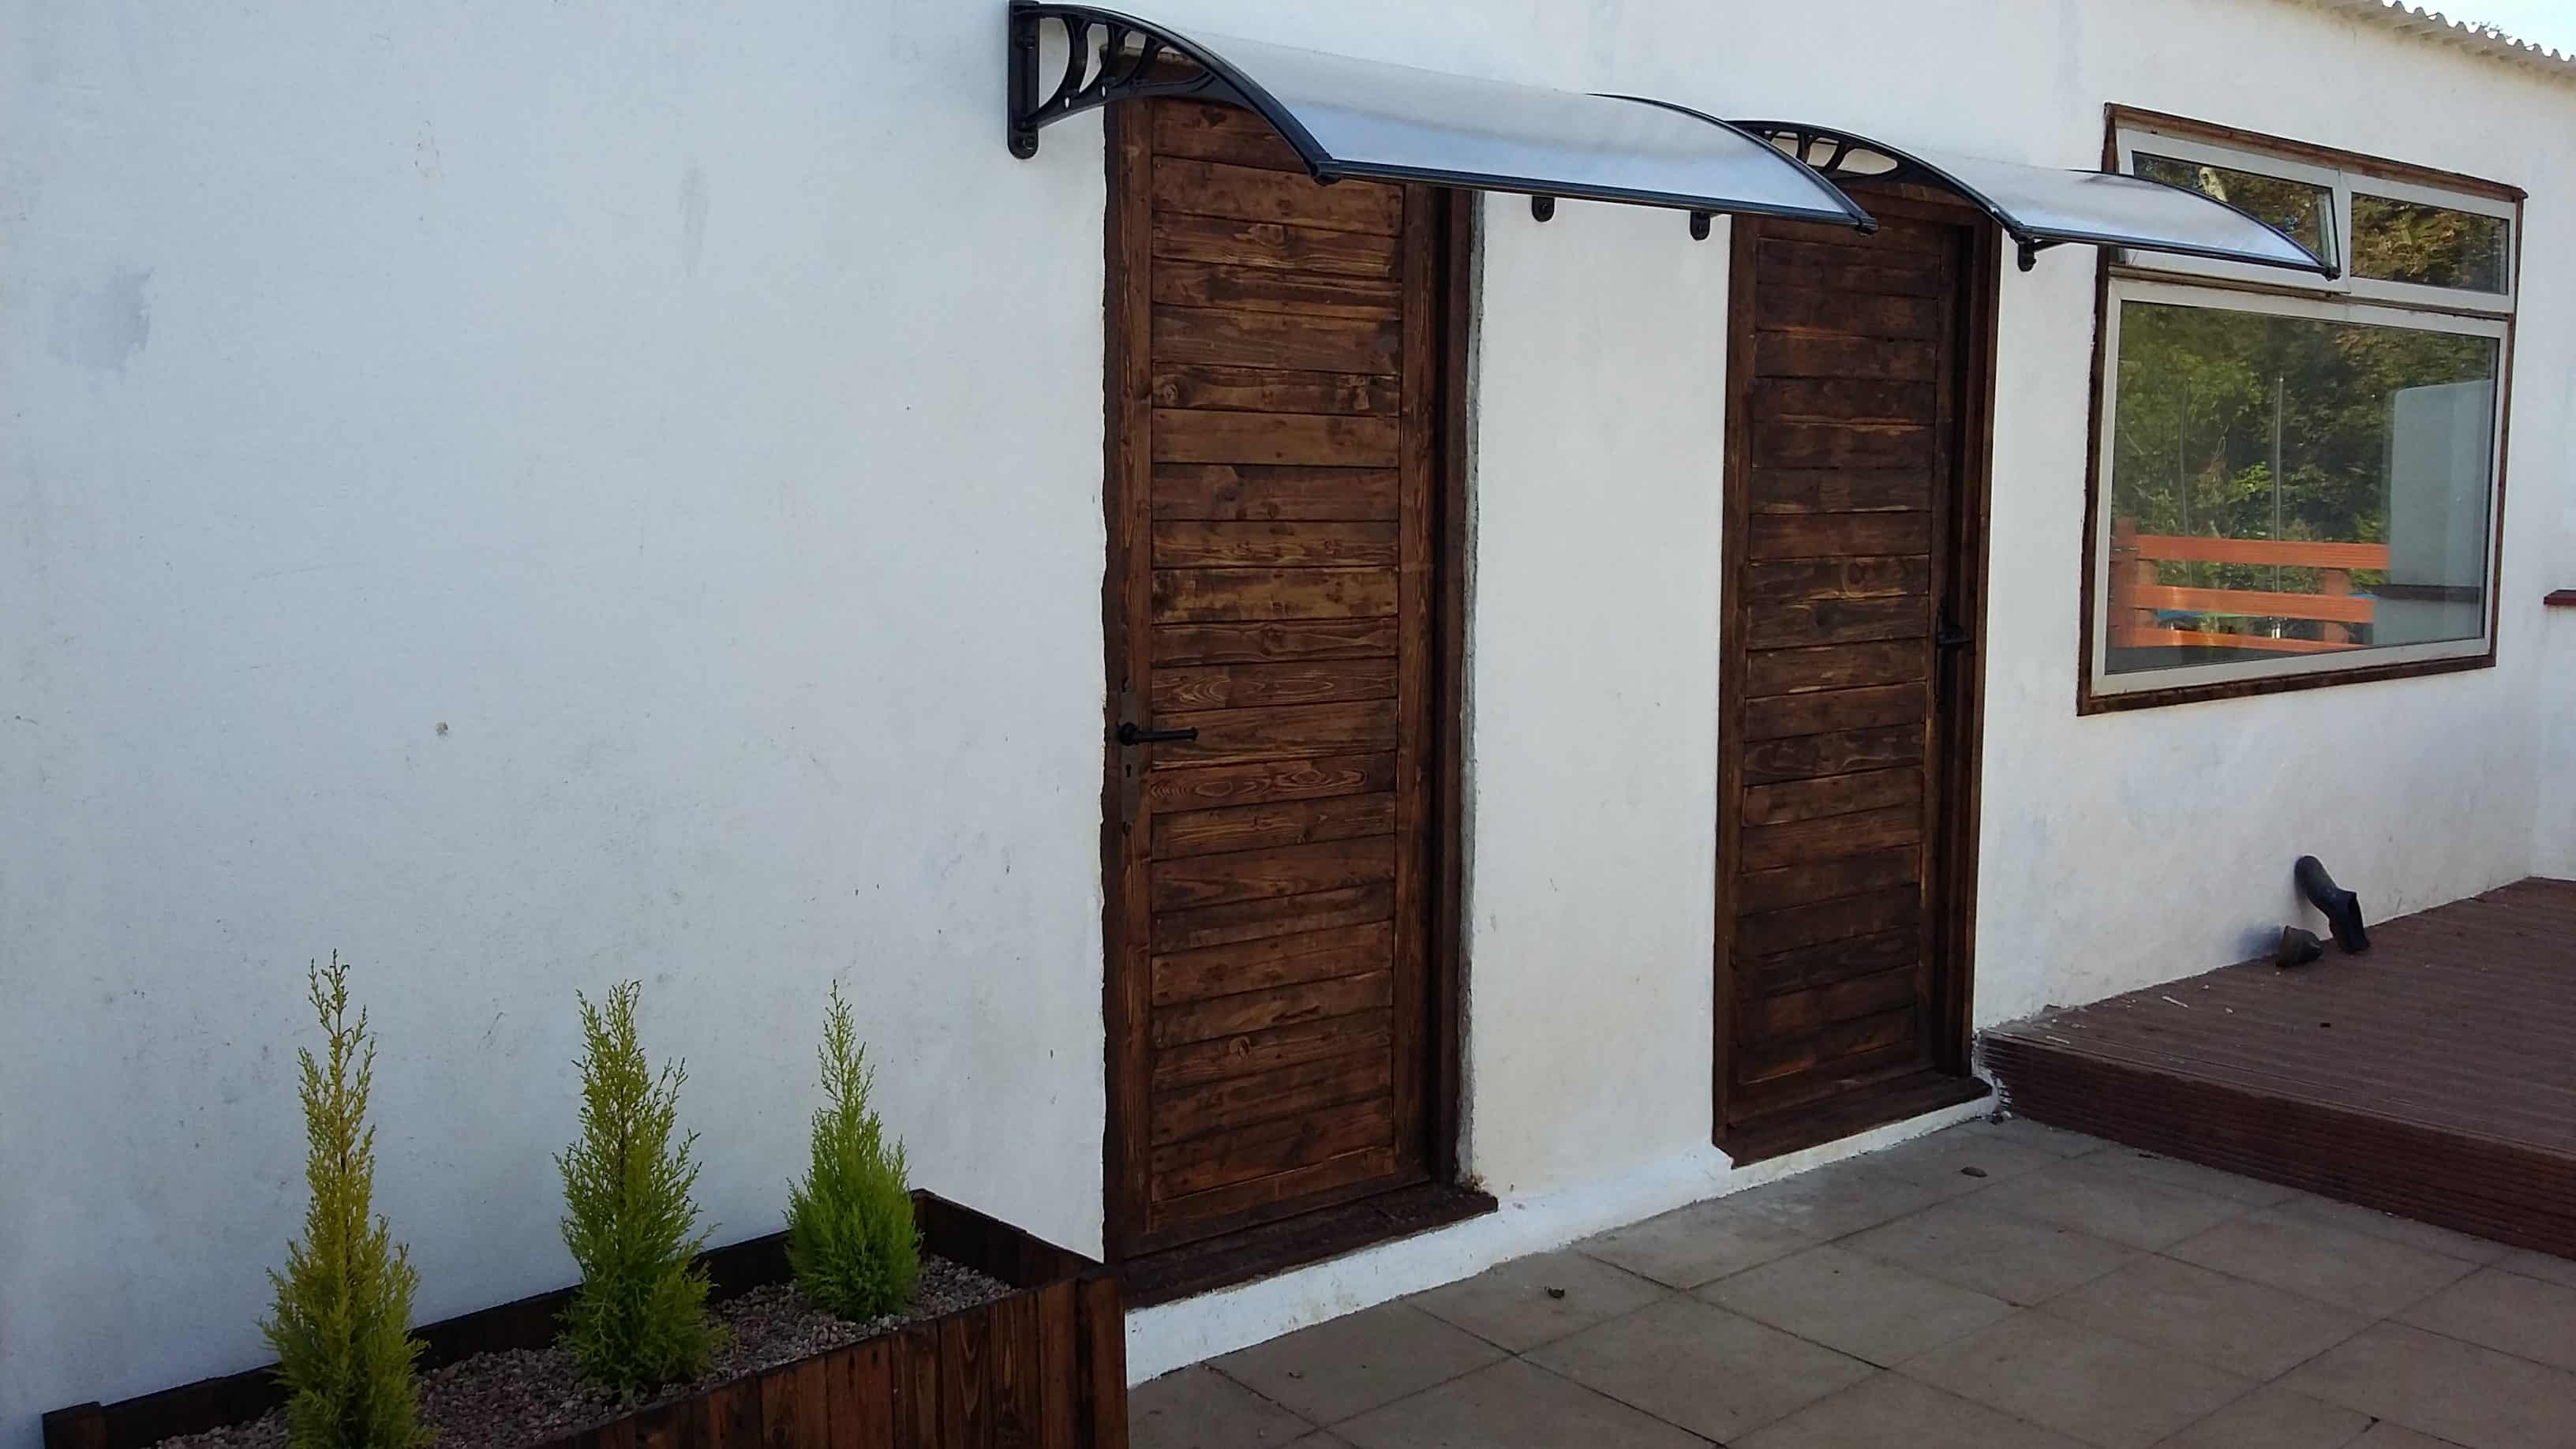 & Pallet Door Set Surrounding Matching Planter Box u2022 1001 Pallets